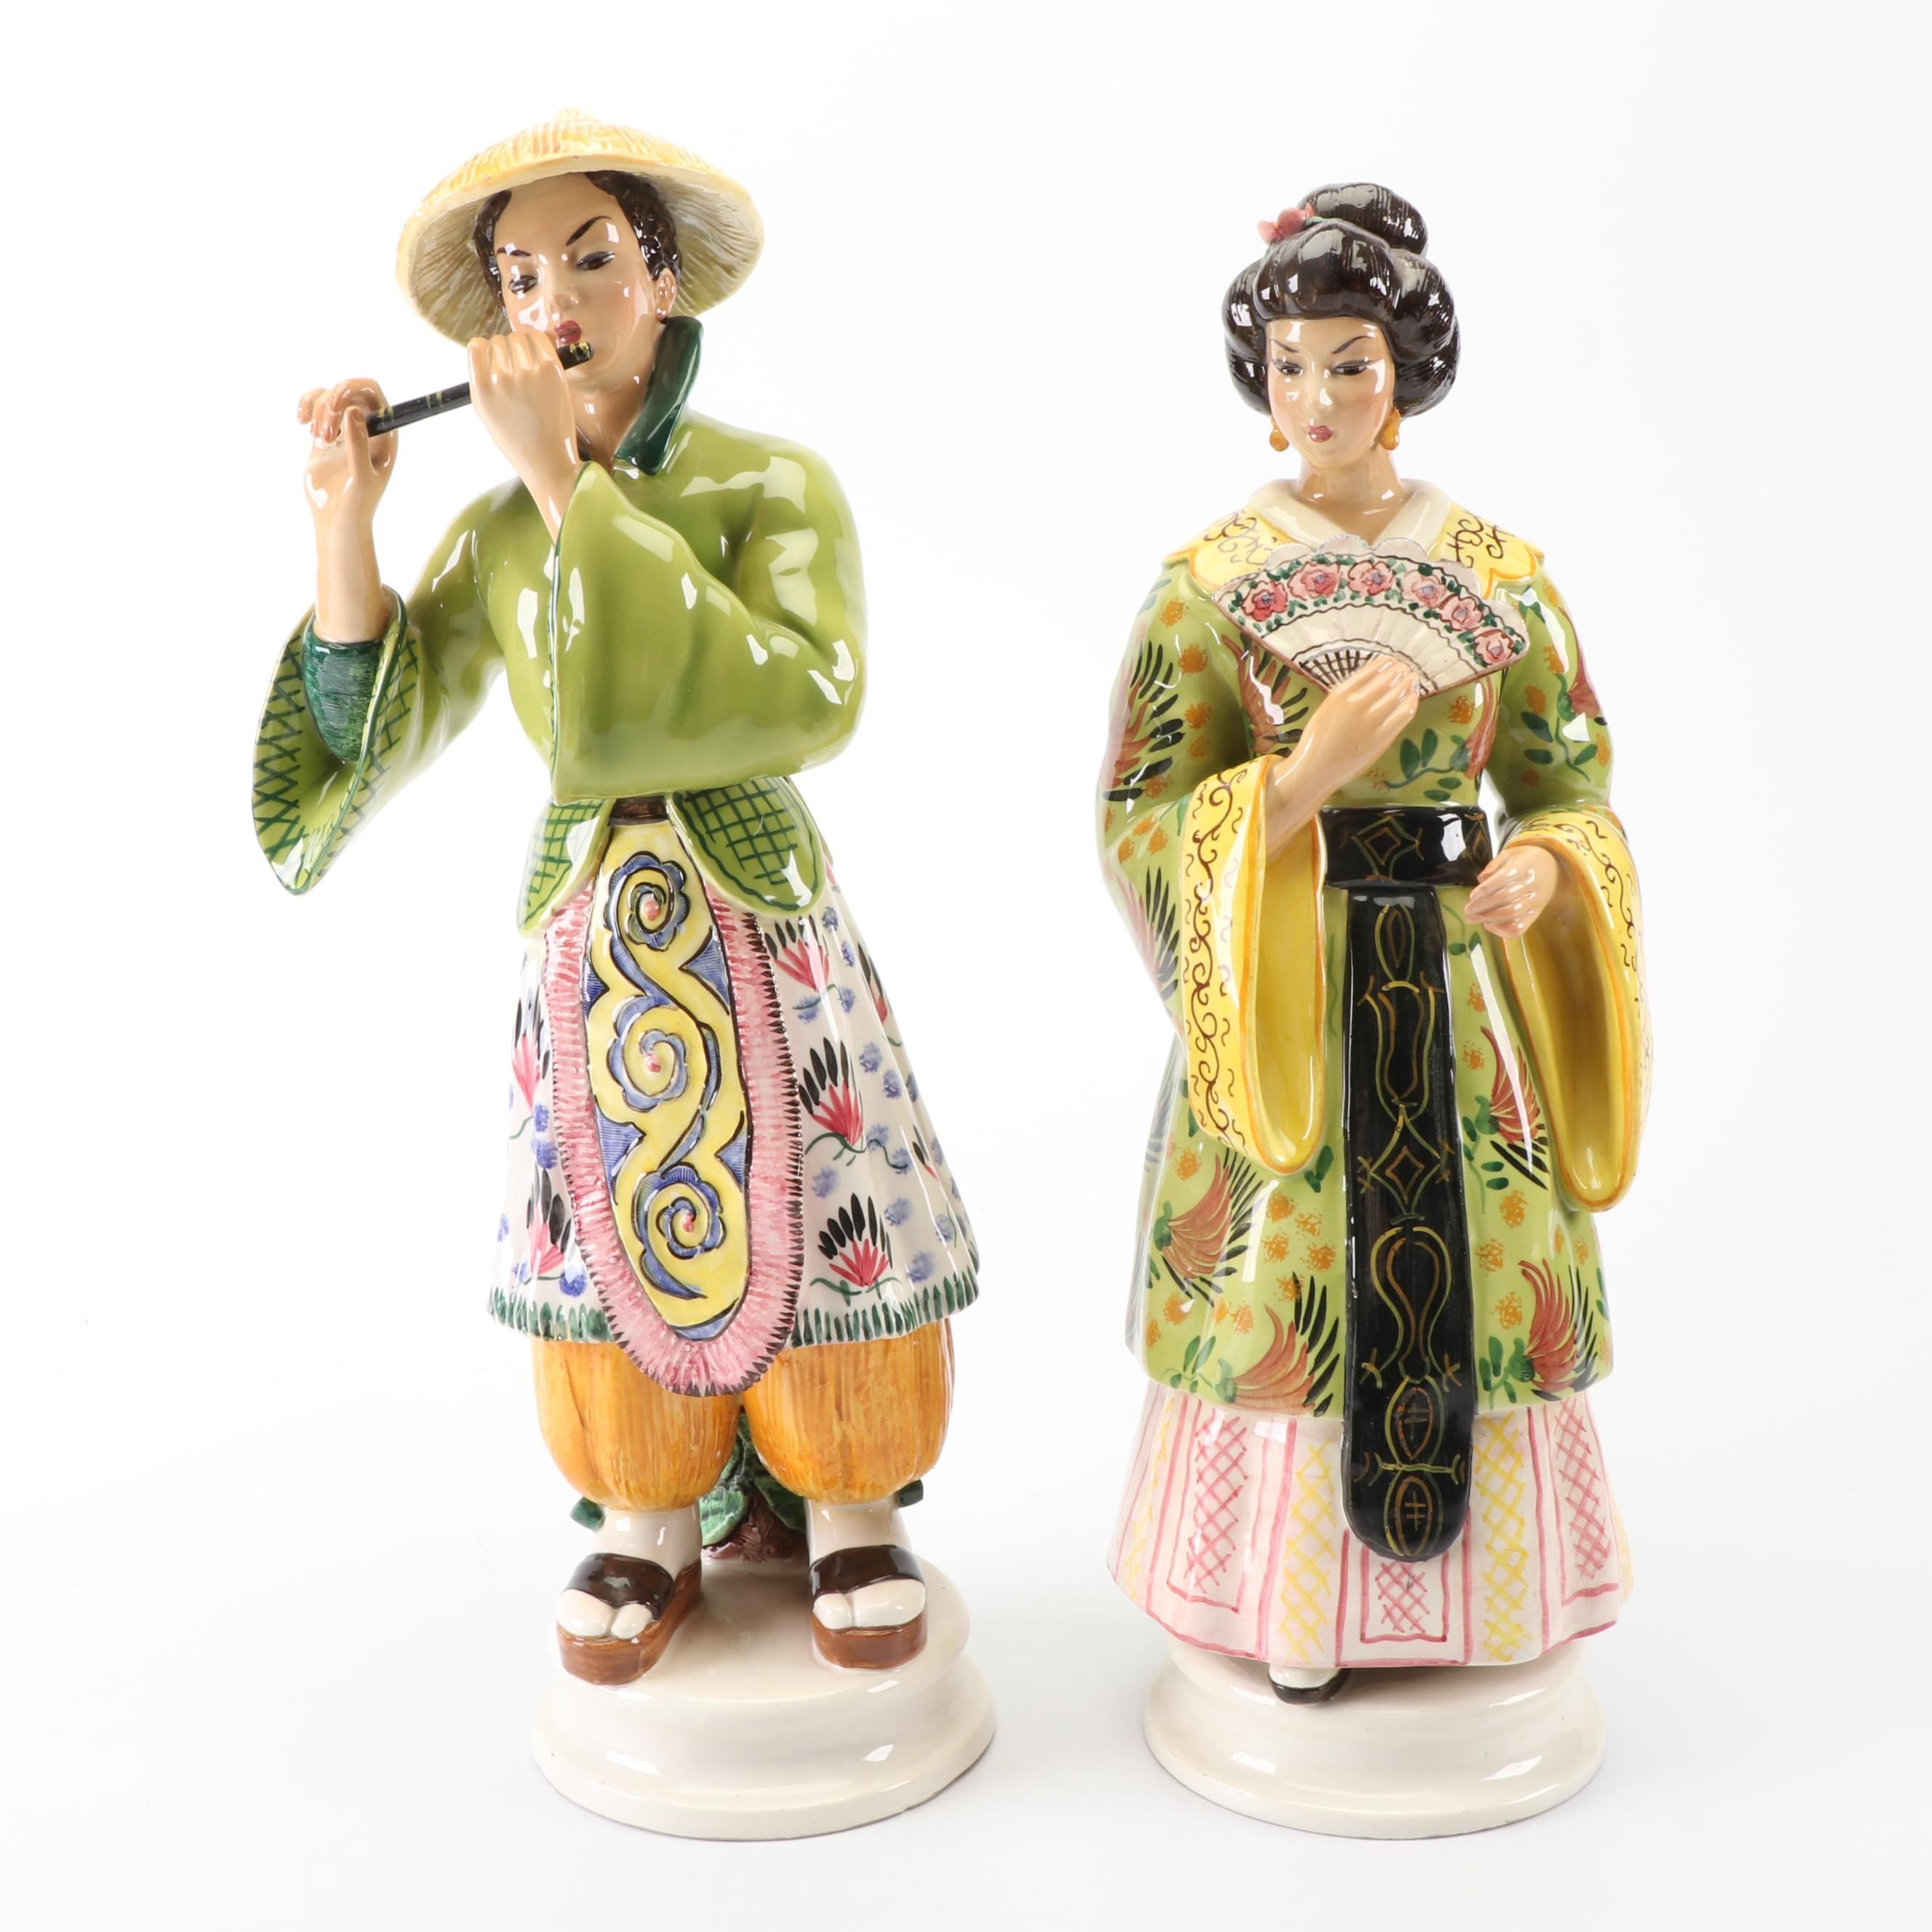 Hand-Painted Italian Asian-Inspired Ceramic Figures